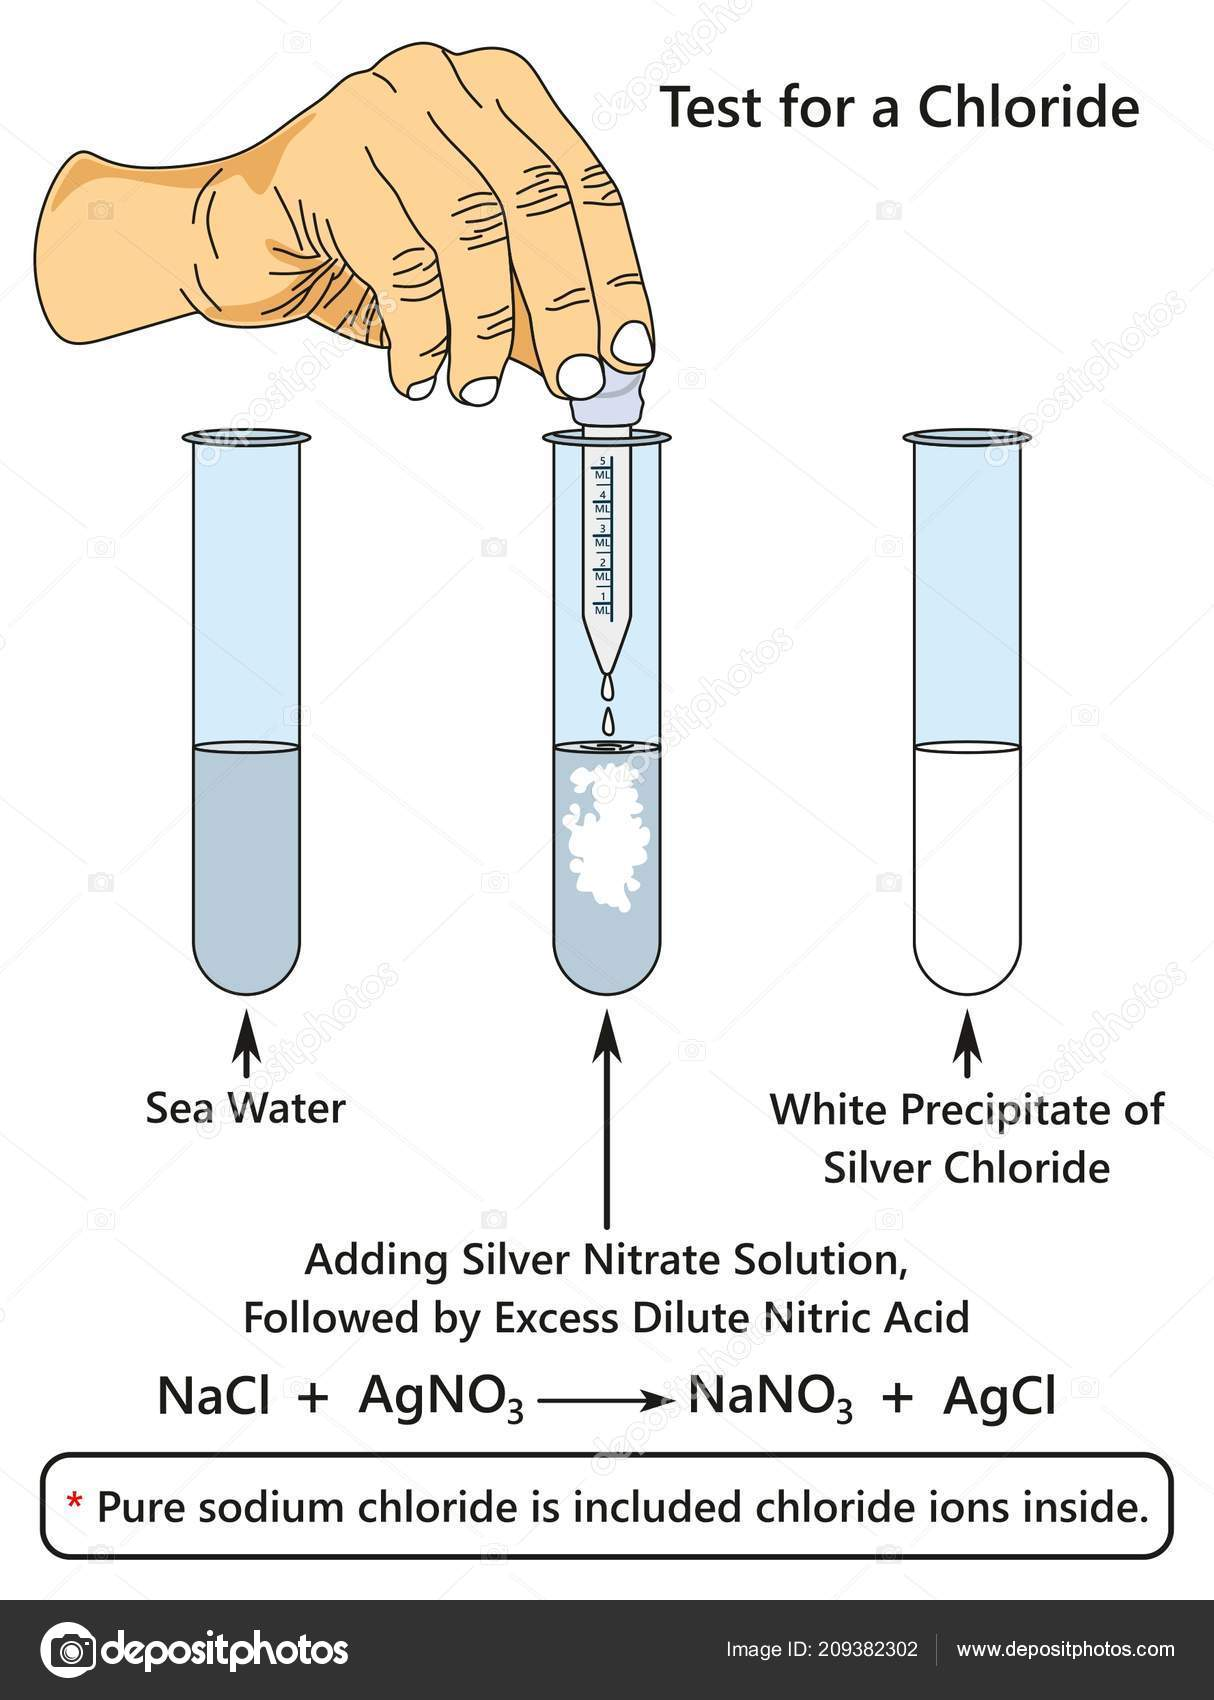 hight resolution of test for a chloride infographic diagram showing a laboratory experiment indicates presence of chloride ion when adding silver nitrate solution to sea water